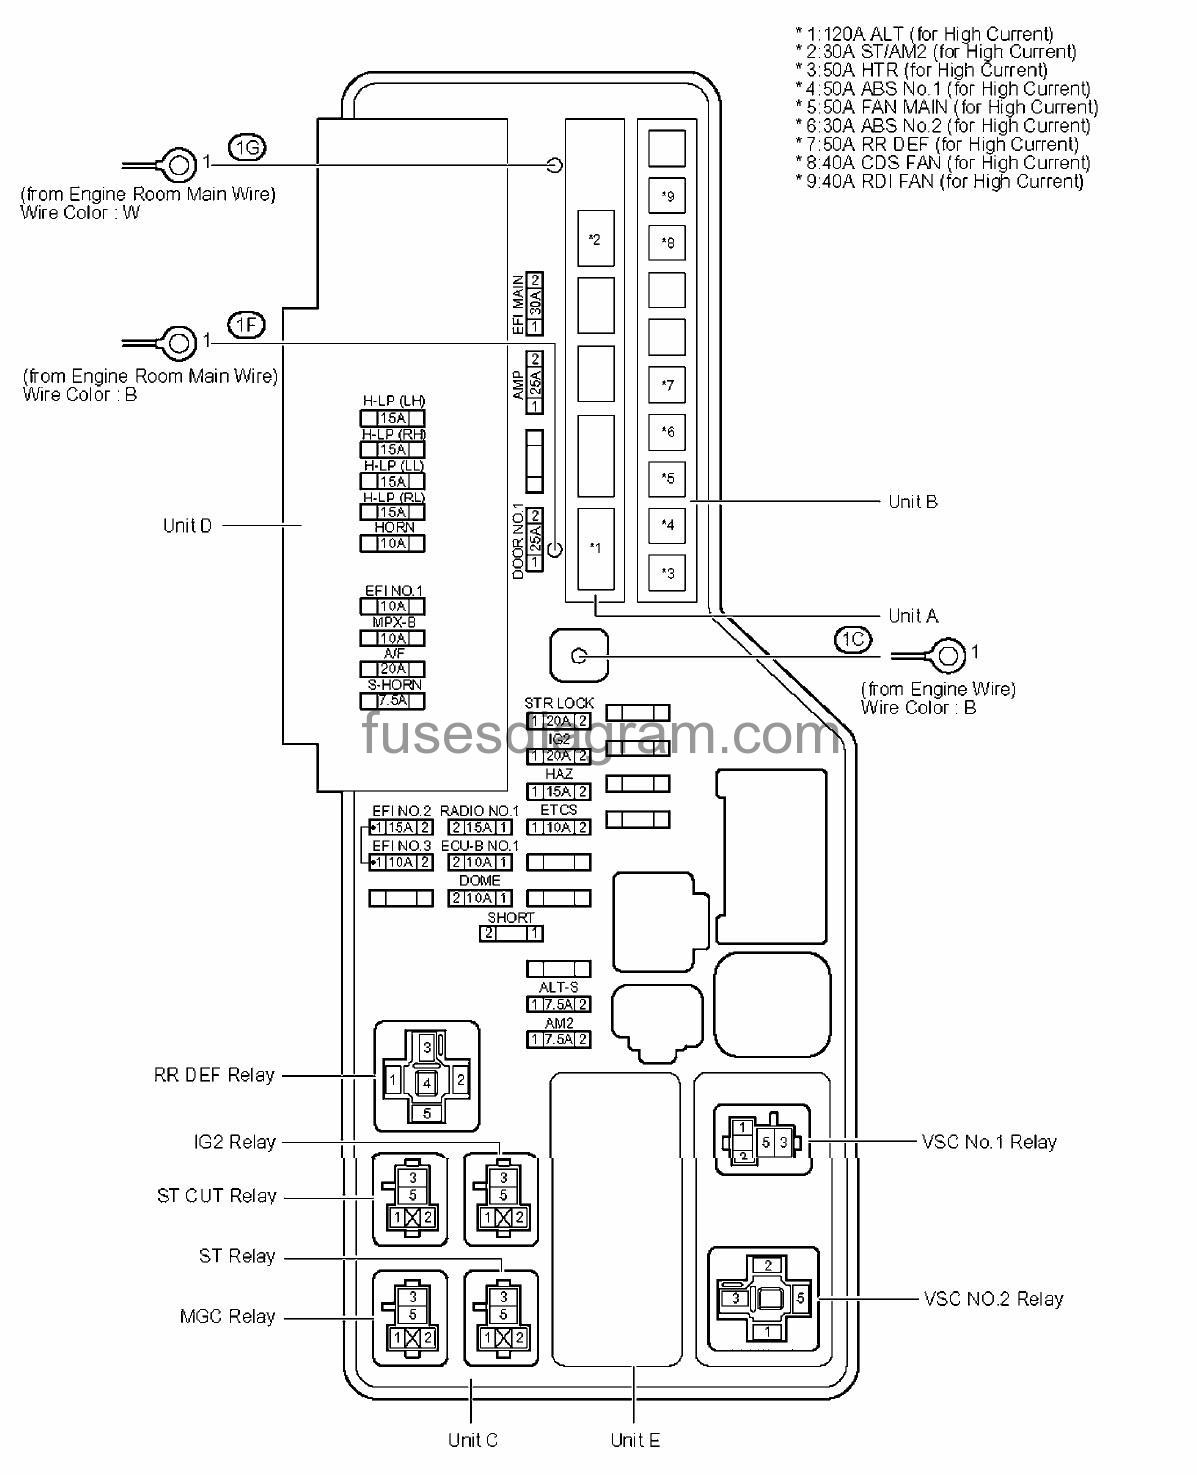 2011 Prius Fuse Box Diagram : 27 Wiring Diagram Images